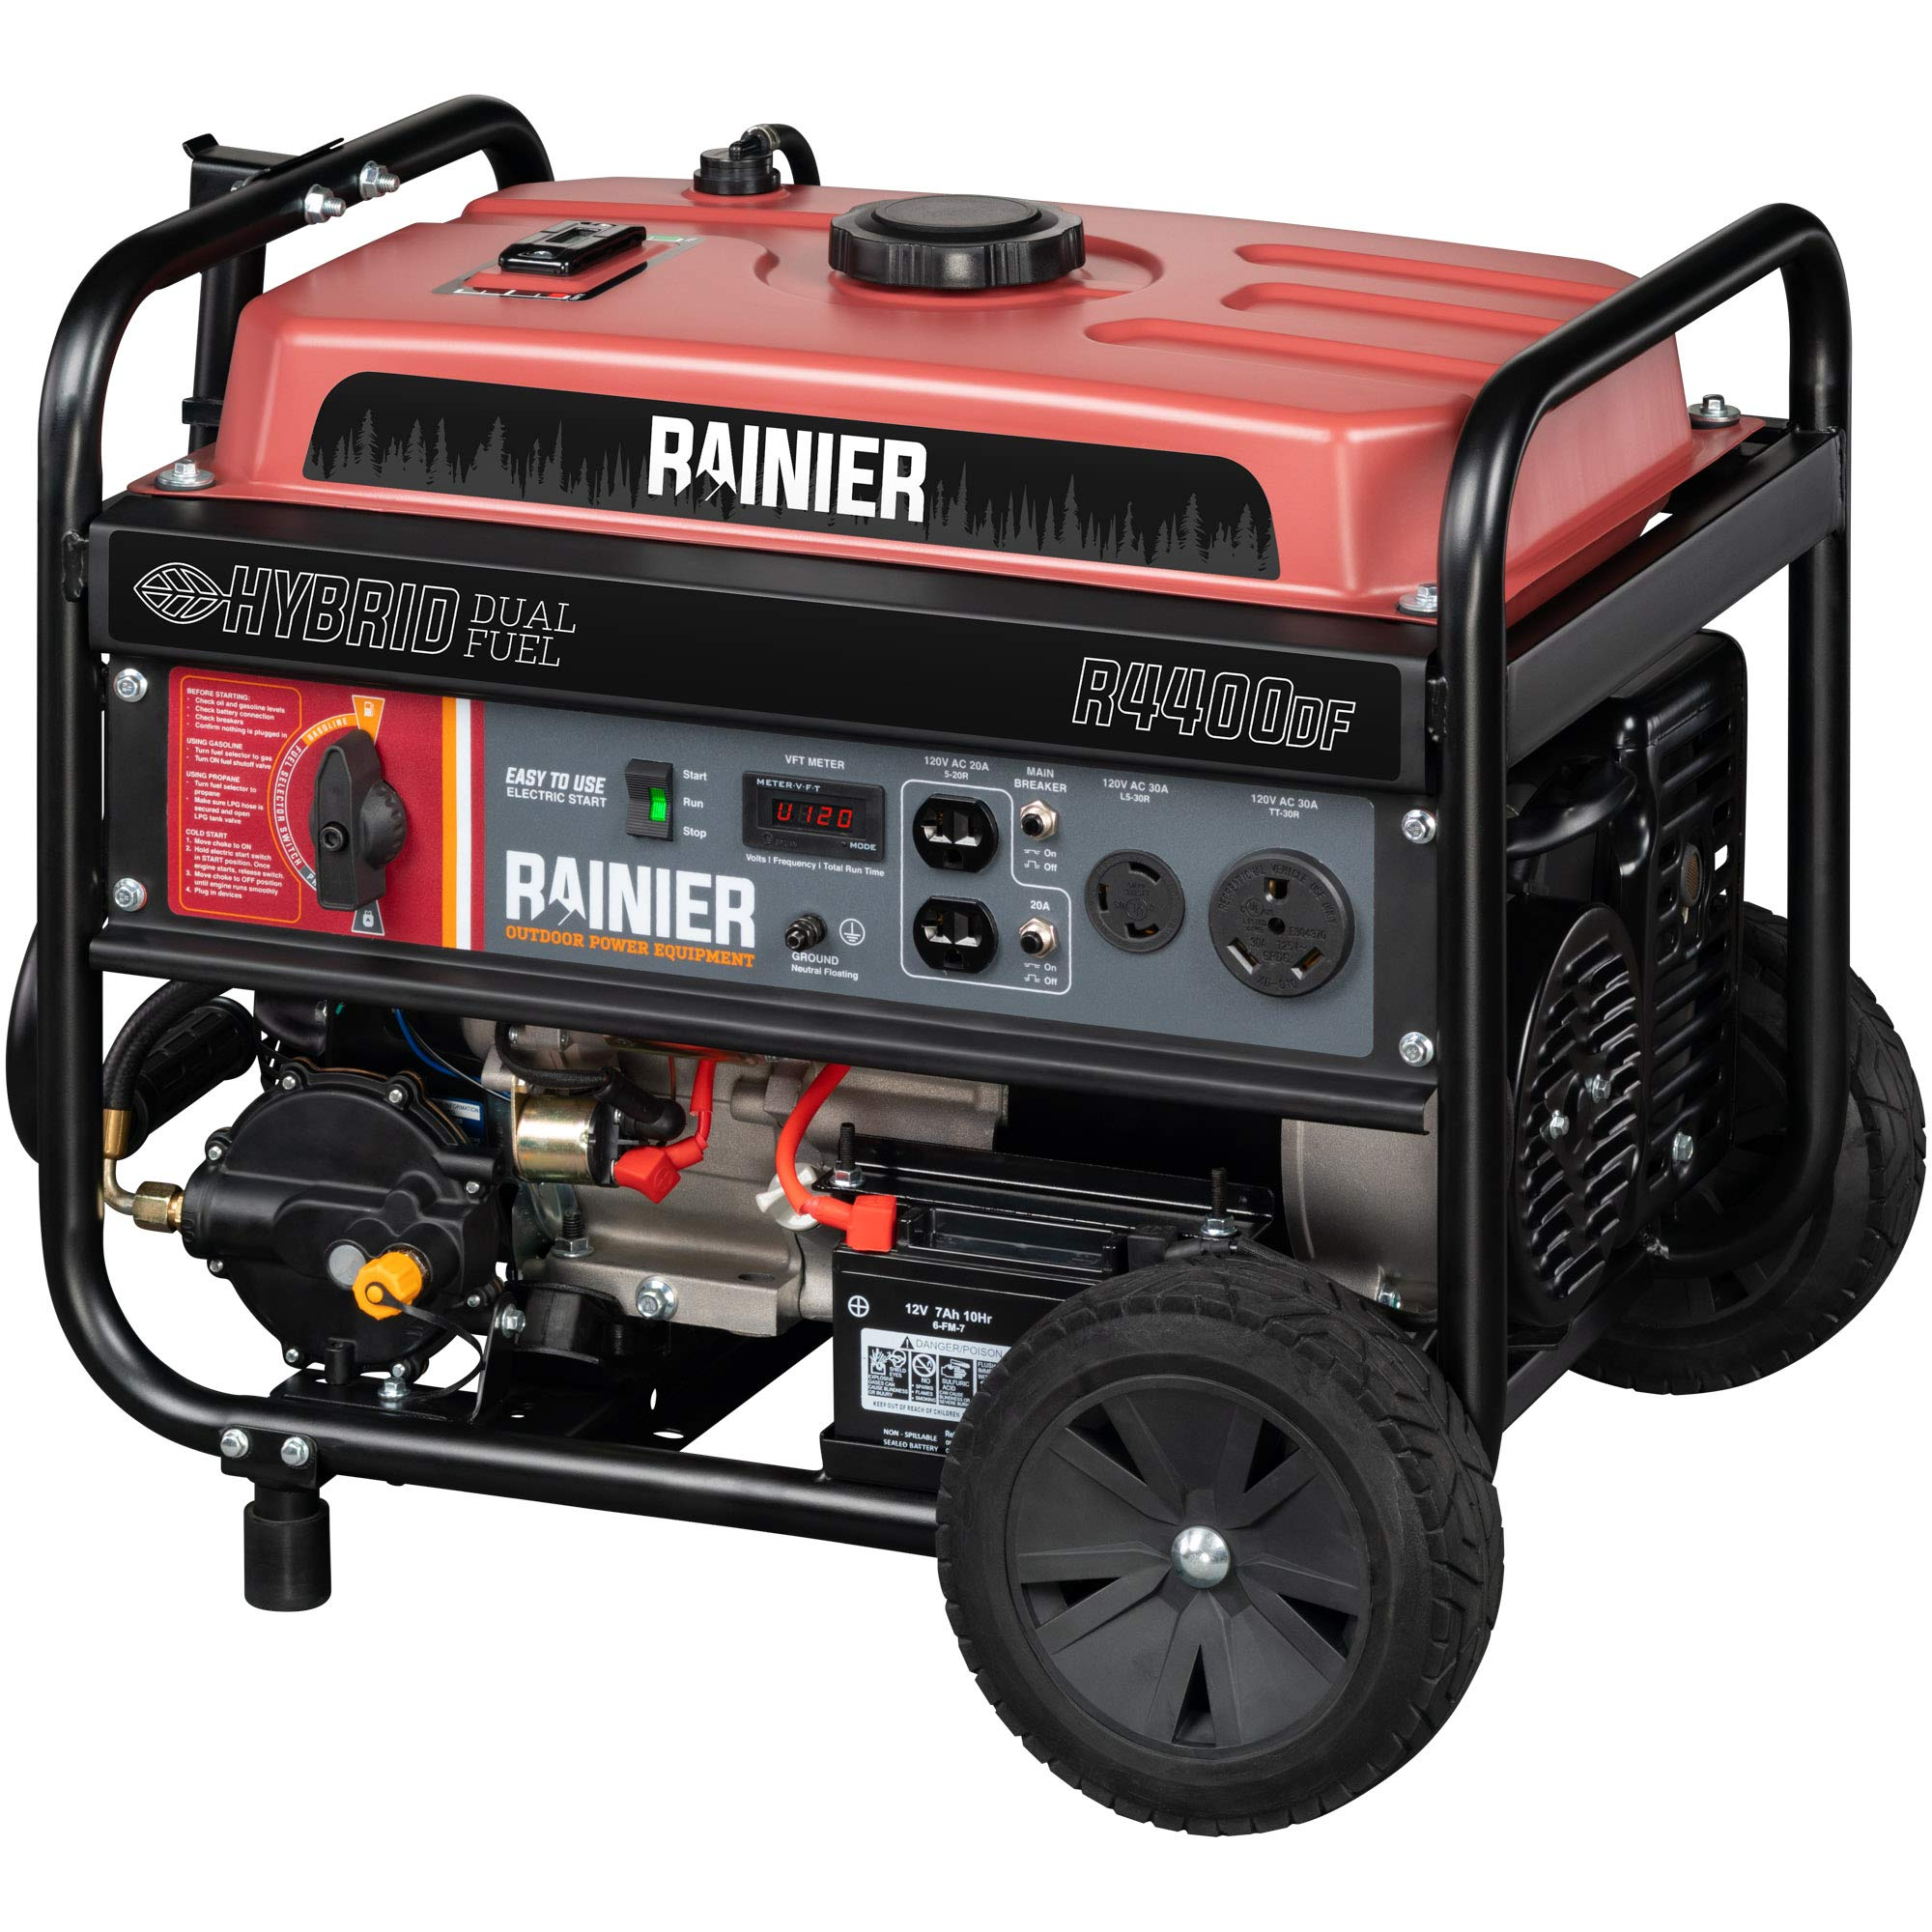 Rainier Portable Generator With Electric Start –